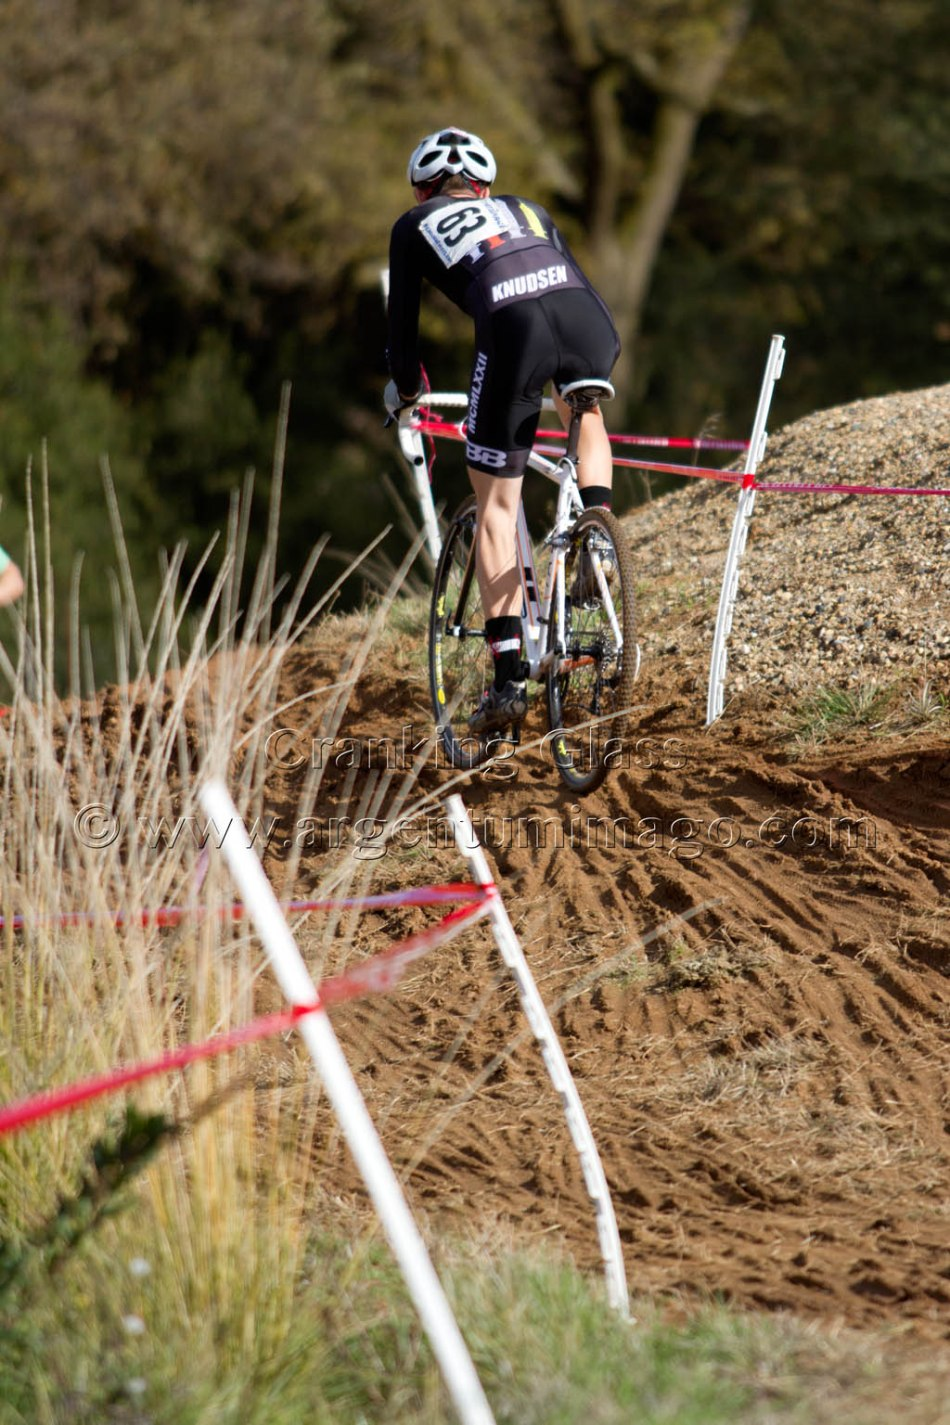 Peter Knudsen (TBB.CX) Racing in the Mud at SacCX